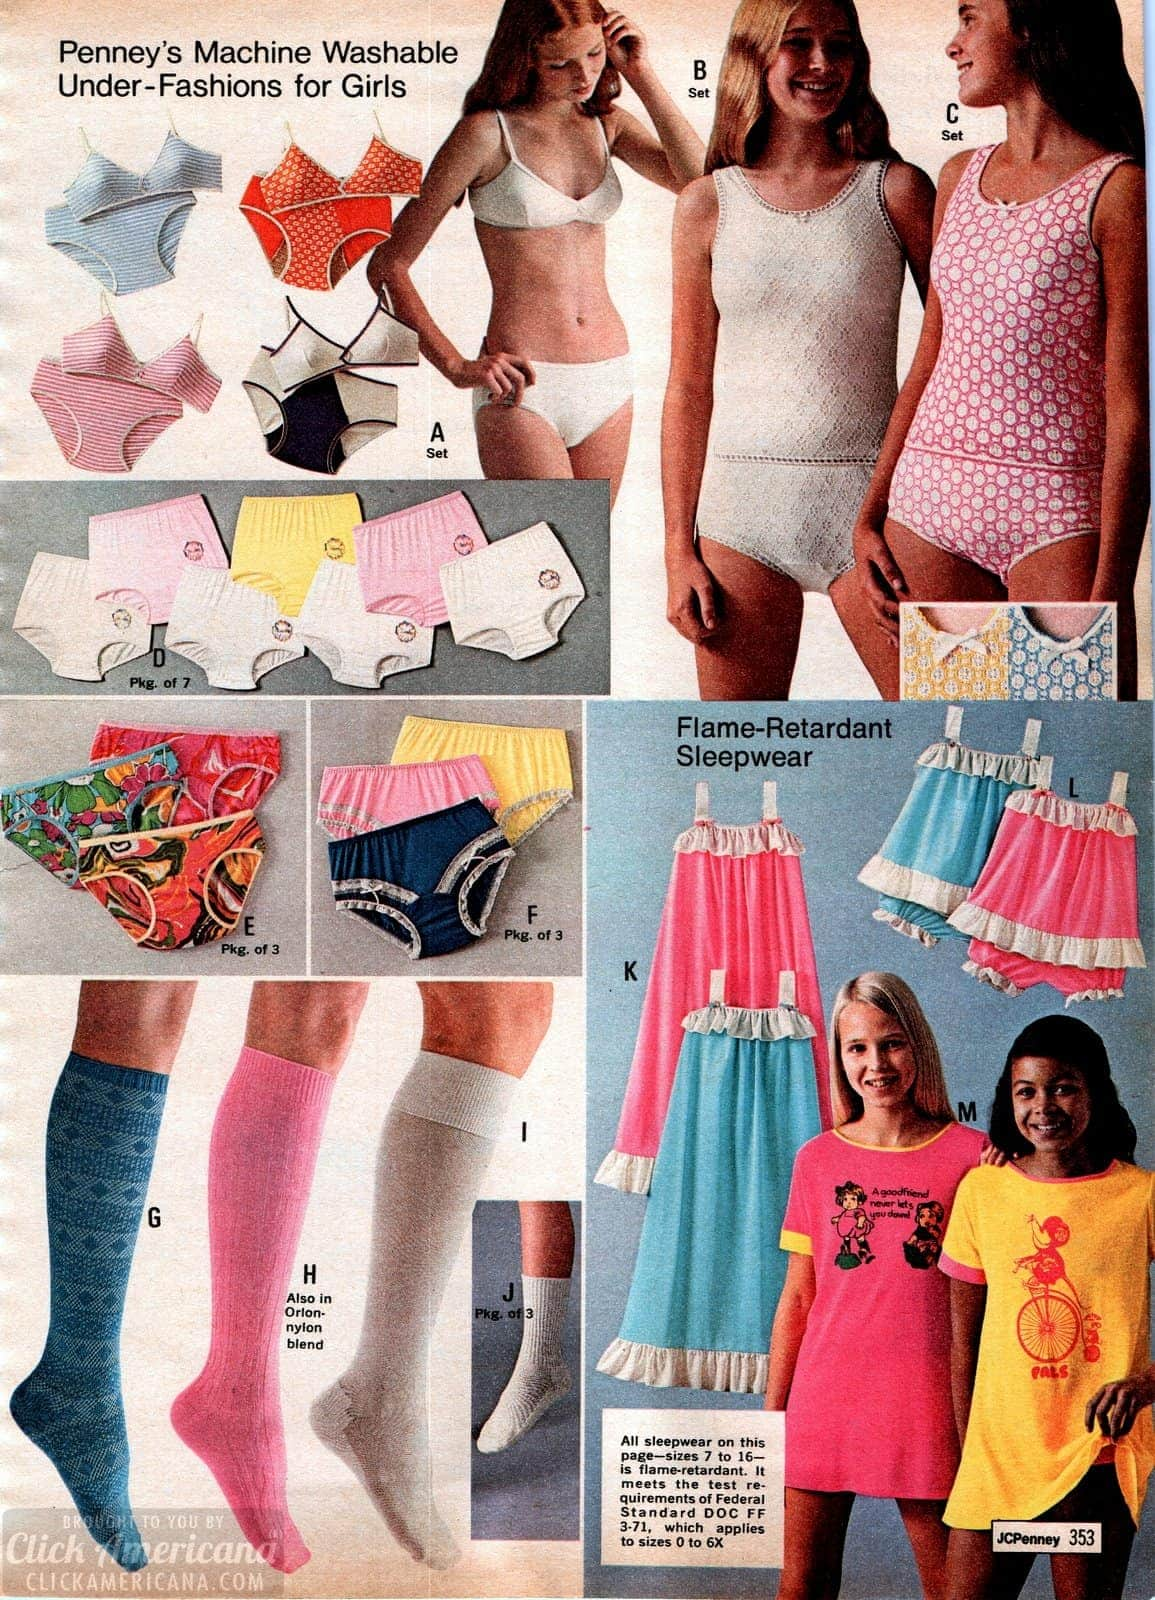 Retro underwear styles for girls from the seventies